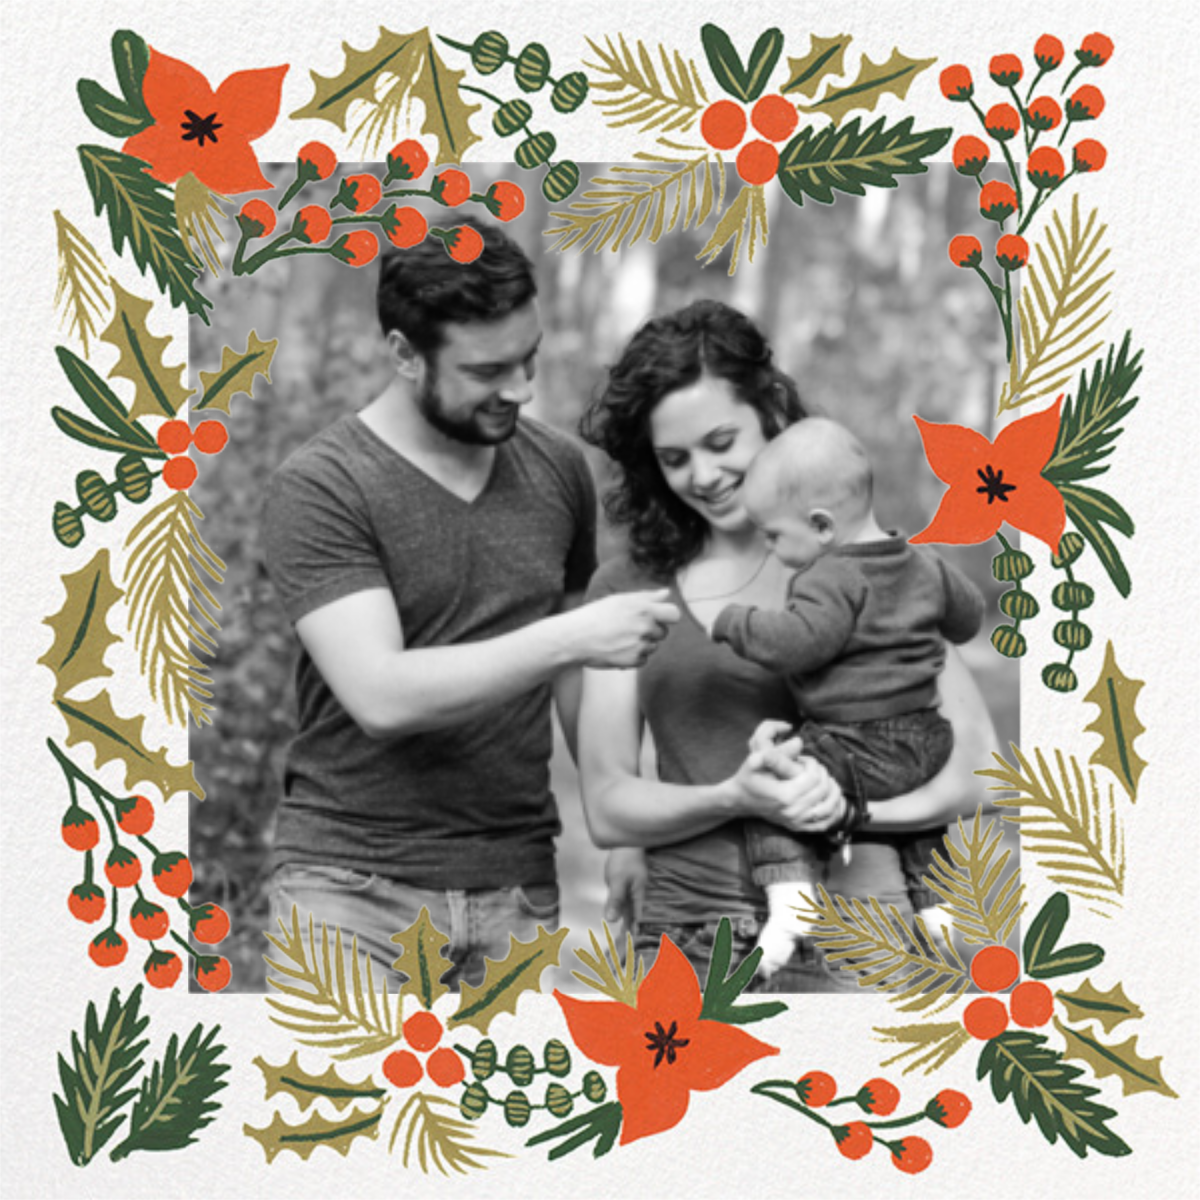 Holiday Potpourri (Square Photo) - Rifle Paper Co. - Holiday cards